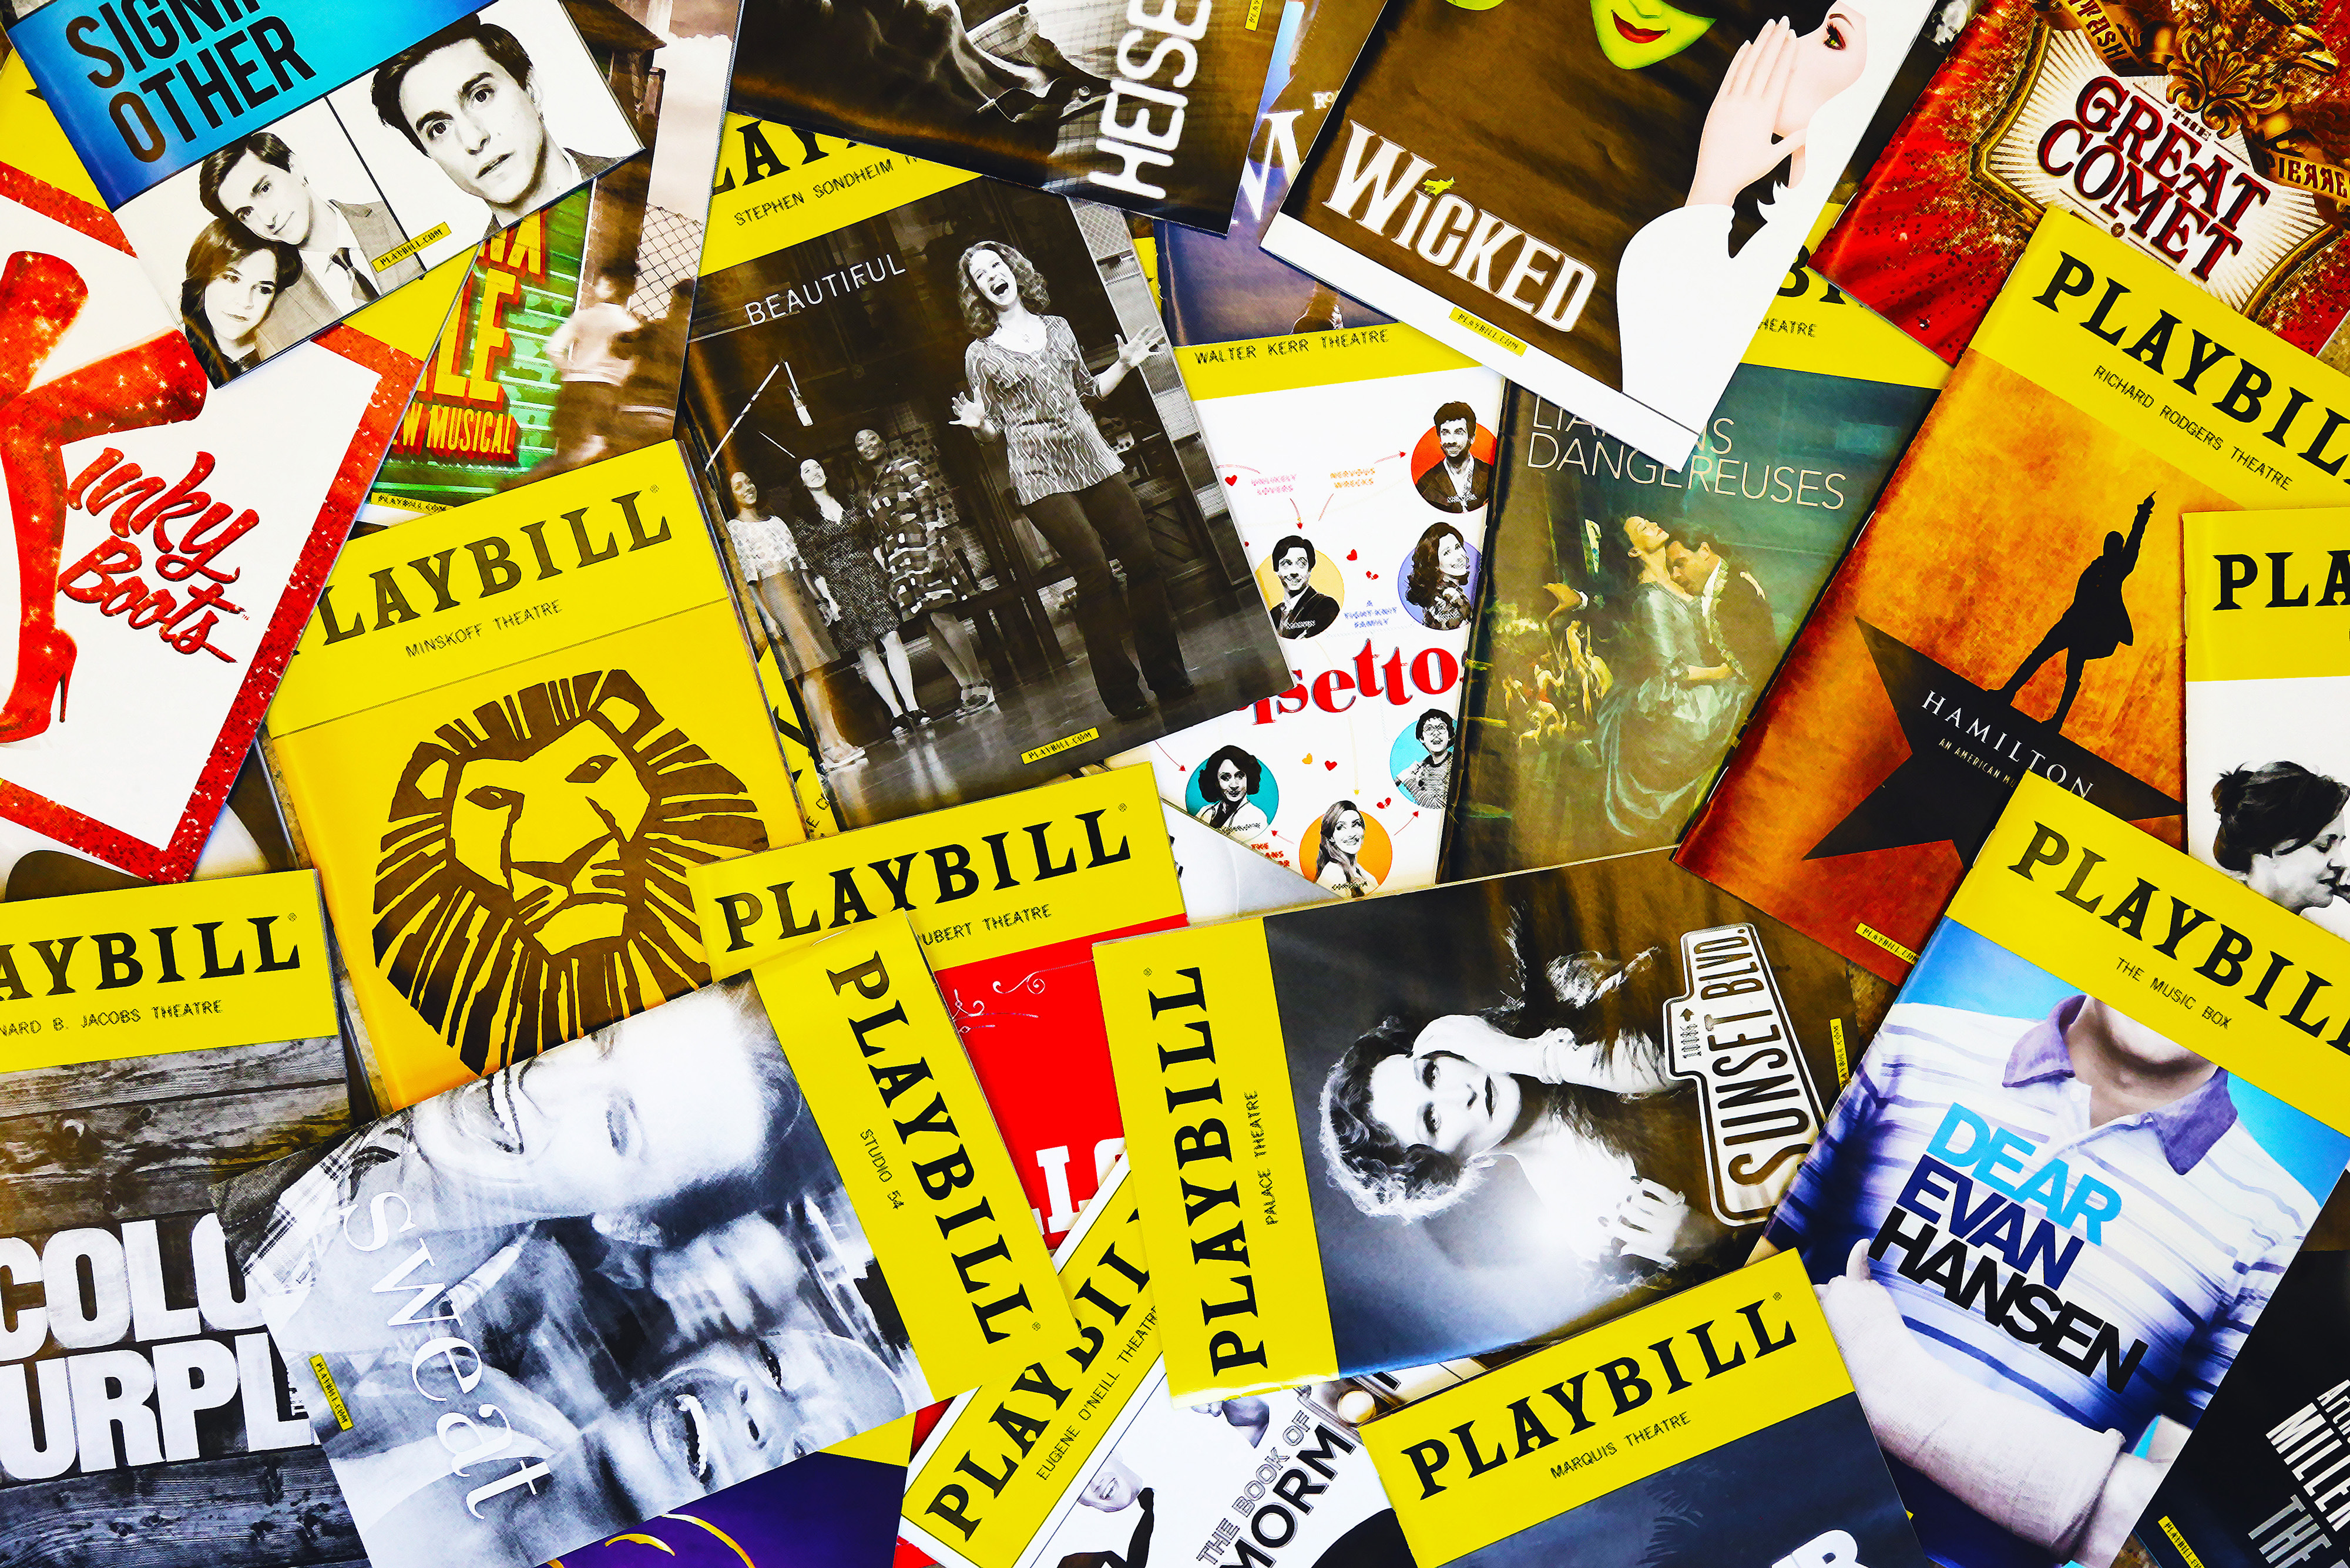 Playbill cover cluster 02 hr